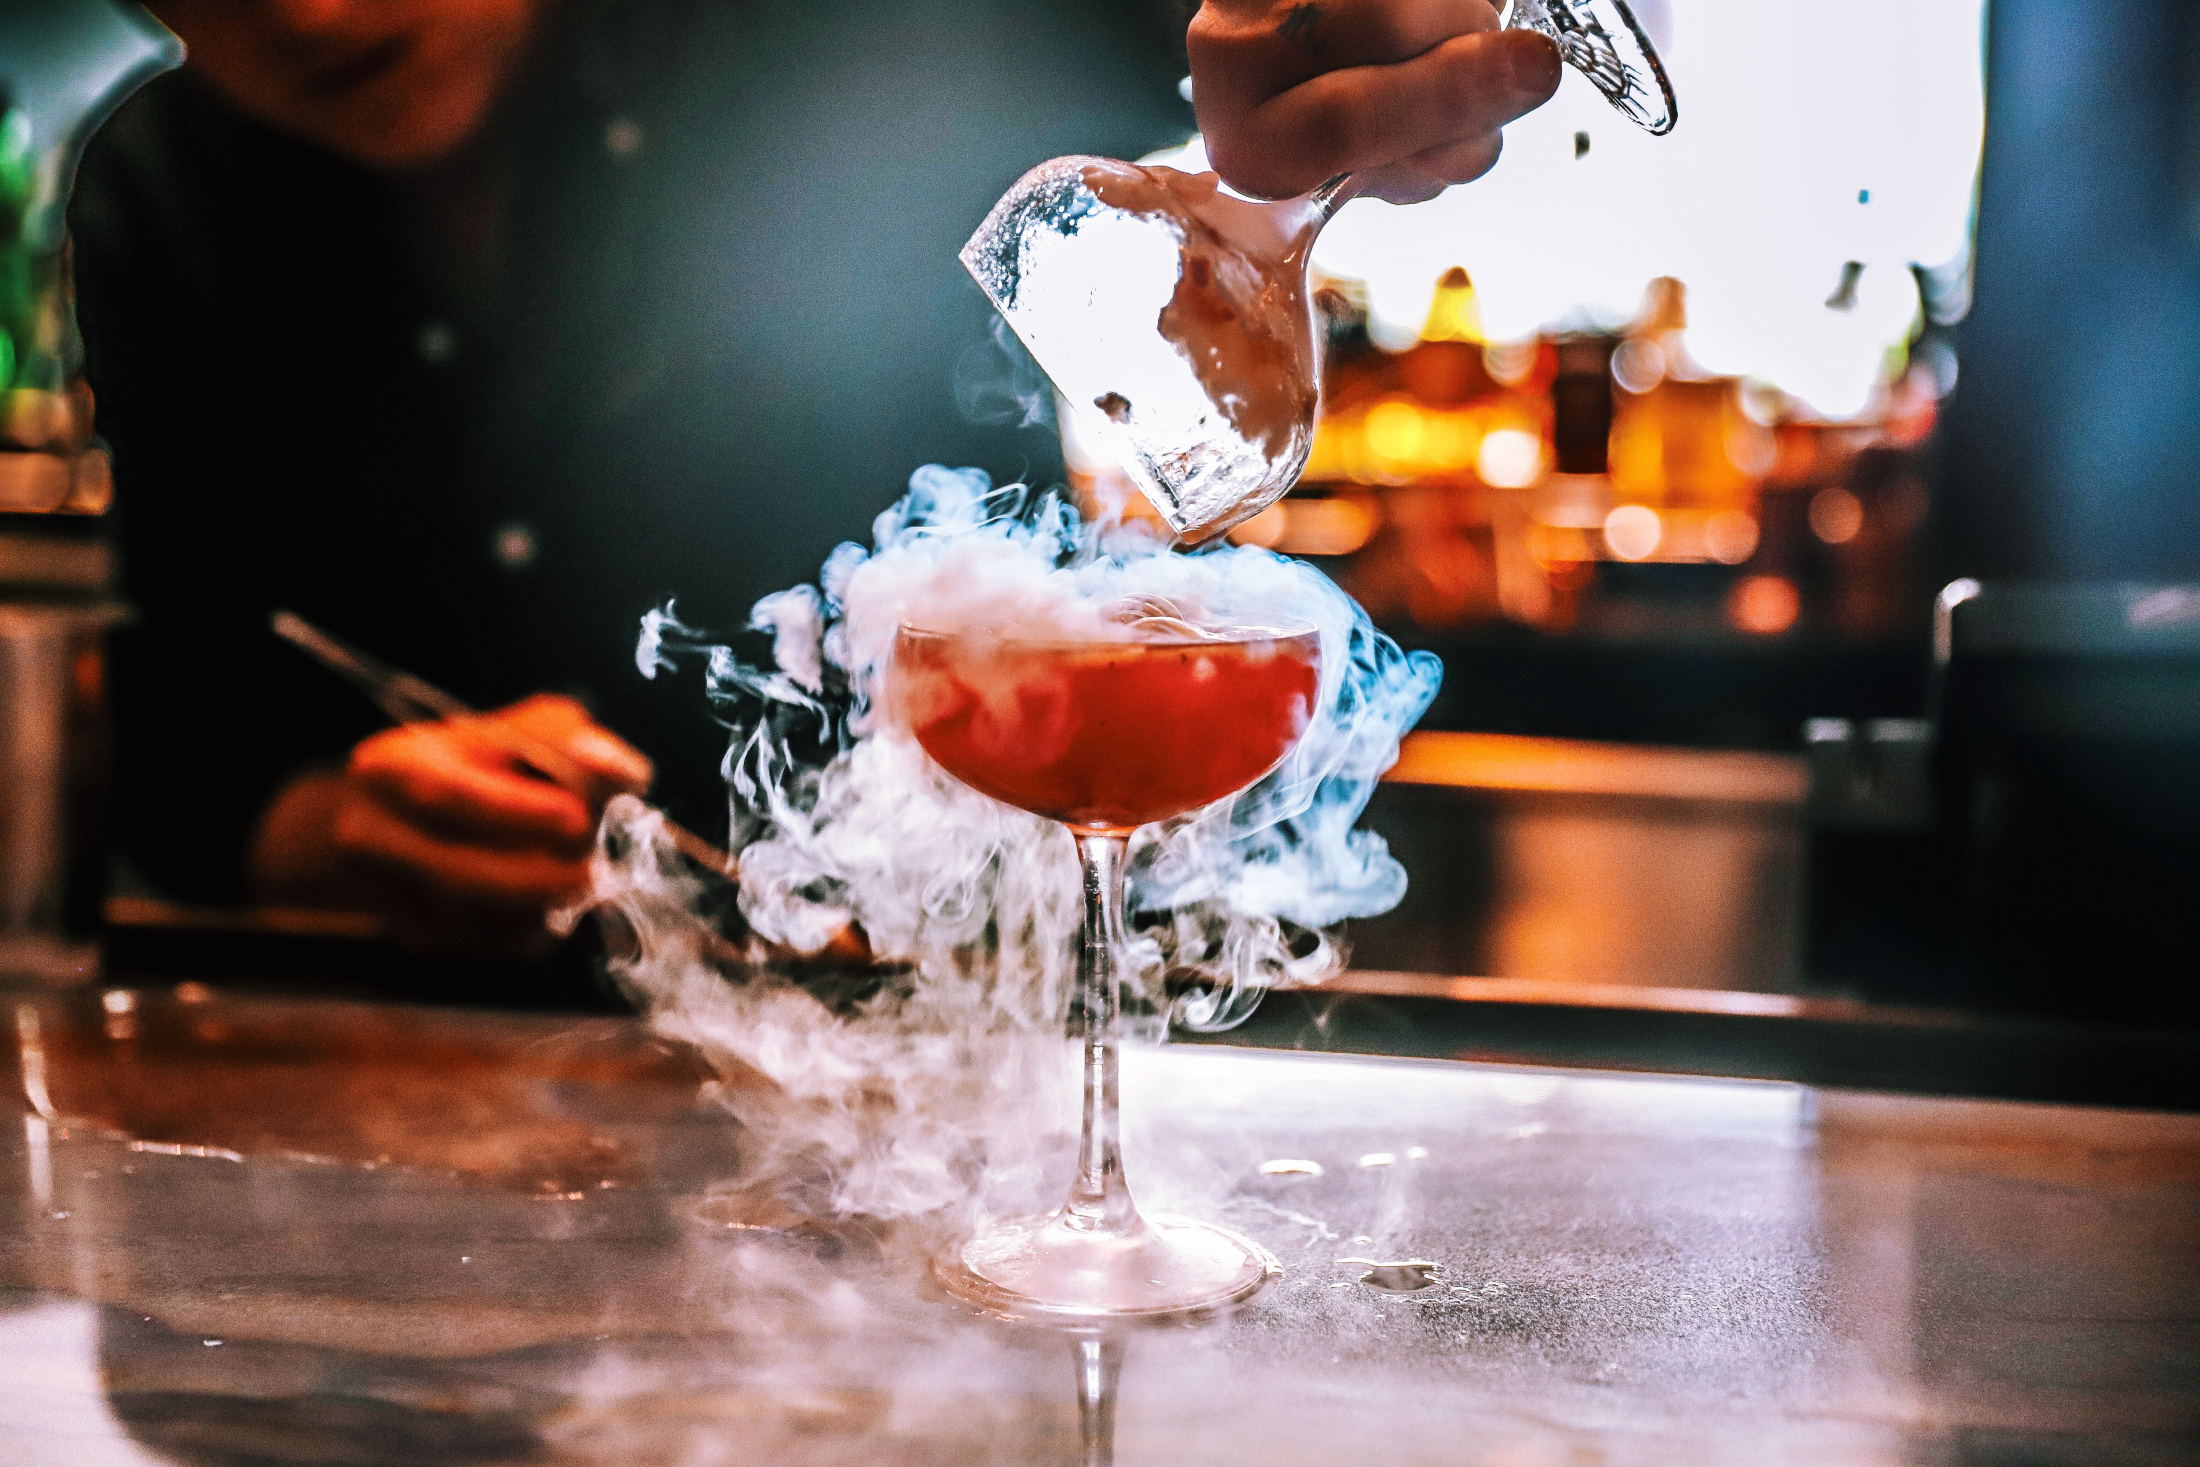 Bartender making a red cocktail with smoking dry ice effect